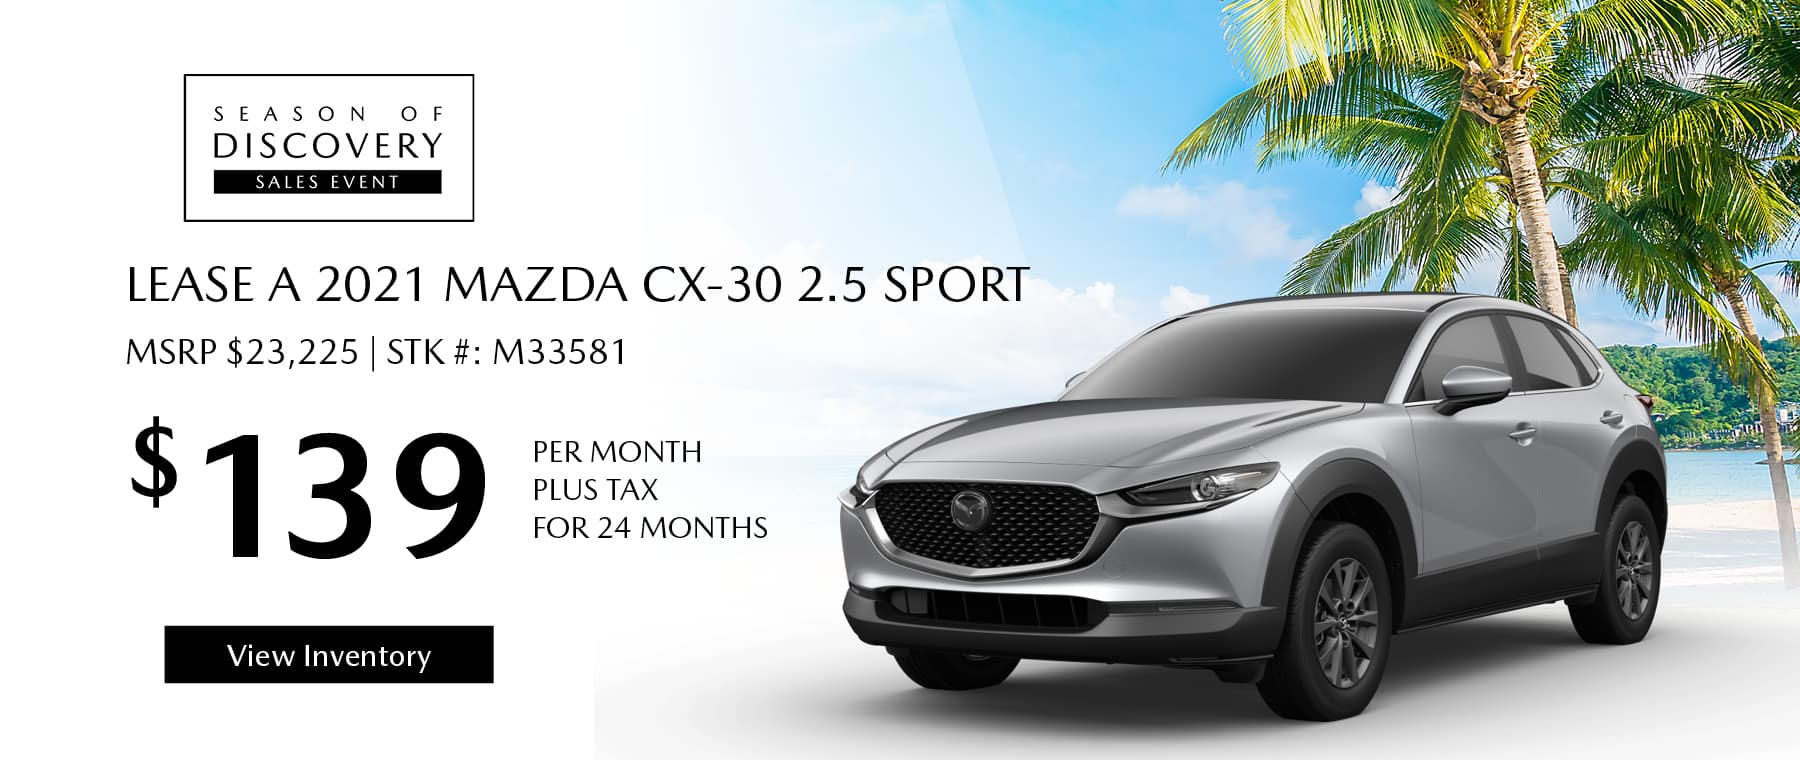 Lease the 2021 Mazda CX-30 2.5 Sport for $139 per month, plus tax for 24 months. Click or tap here to view our inventory.